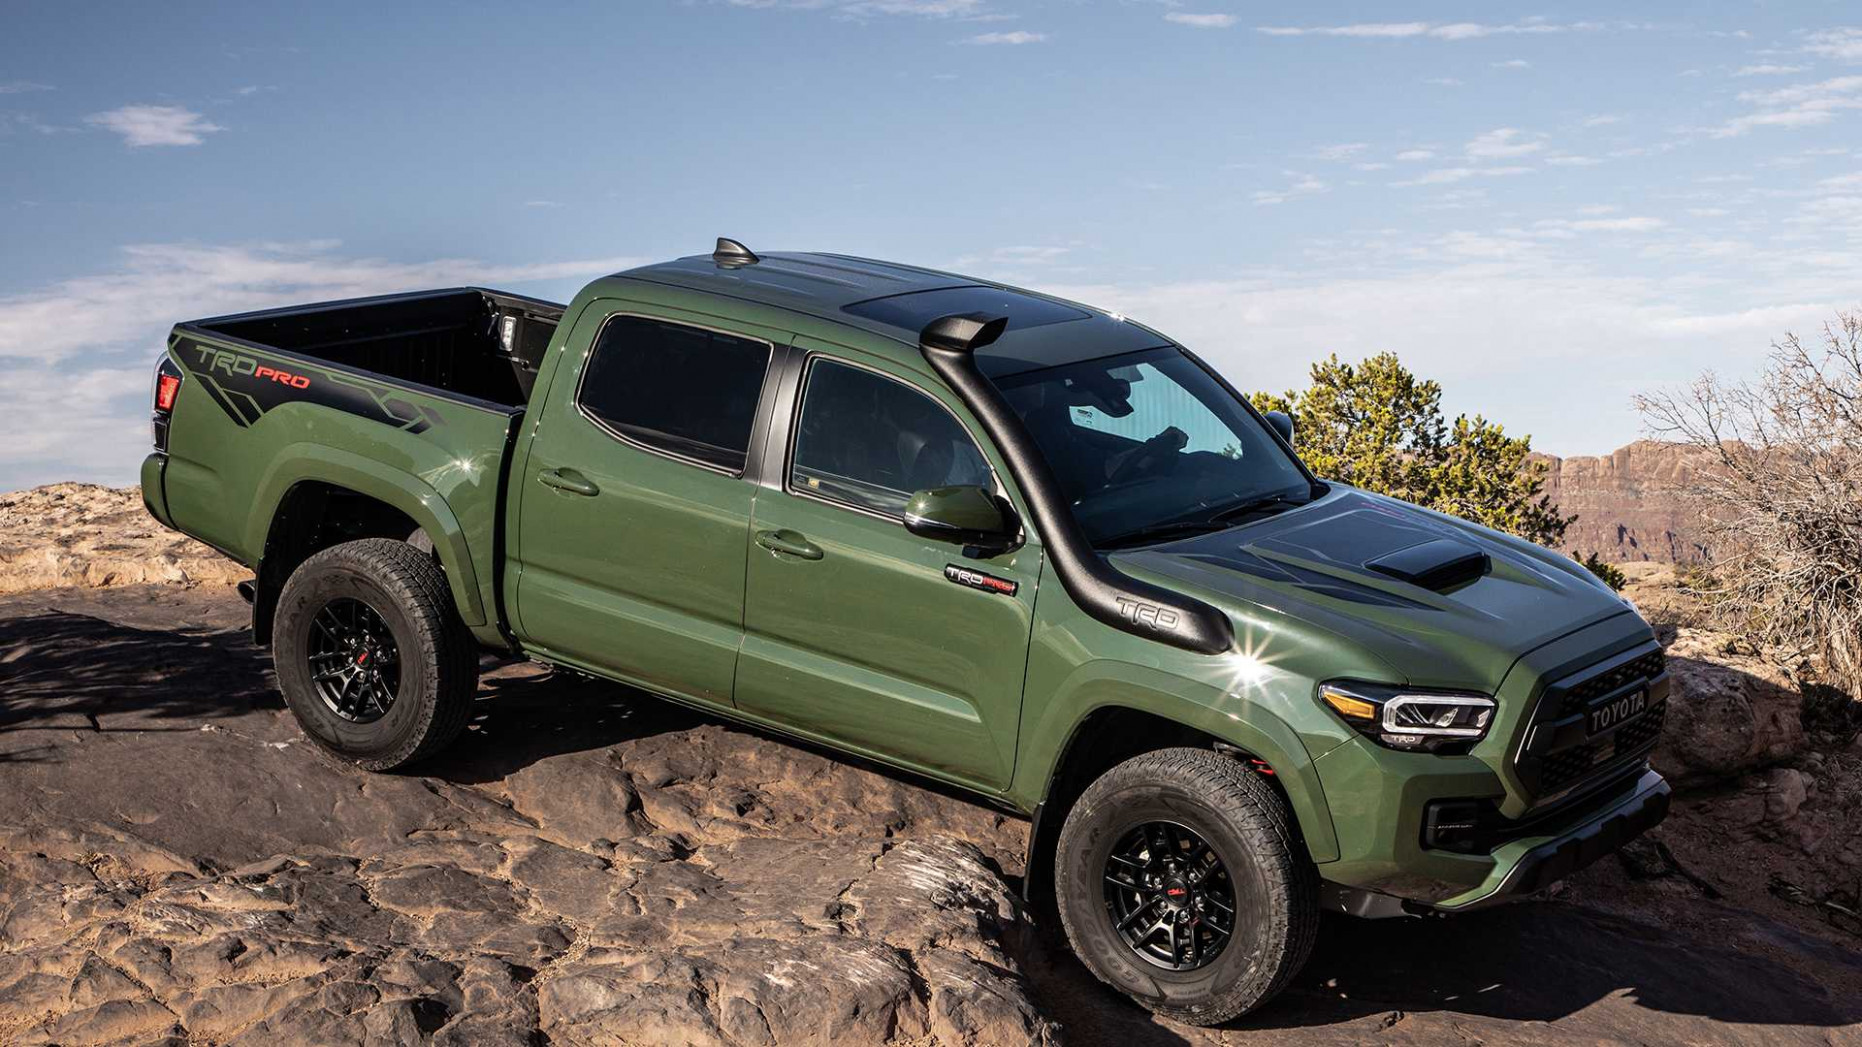 8 Toyota Tacoma TRD Pro Sees $8,8 Price Hike Over 2089 Model - toyota tacoma 2020 price